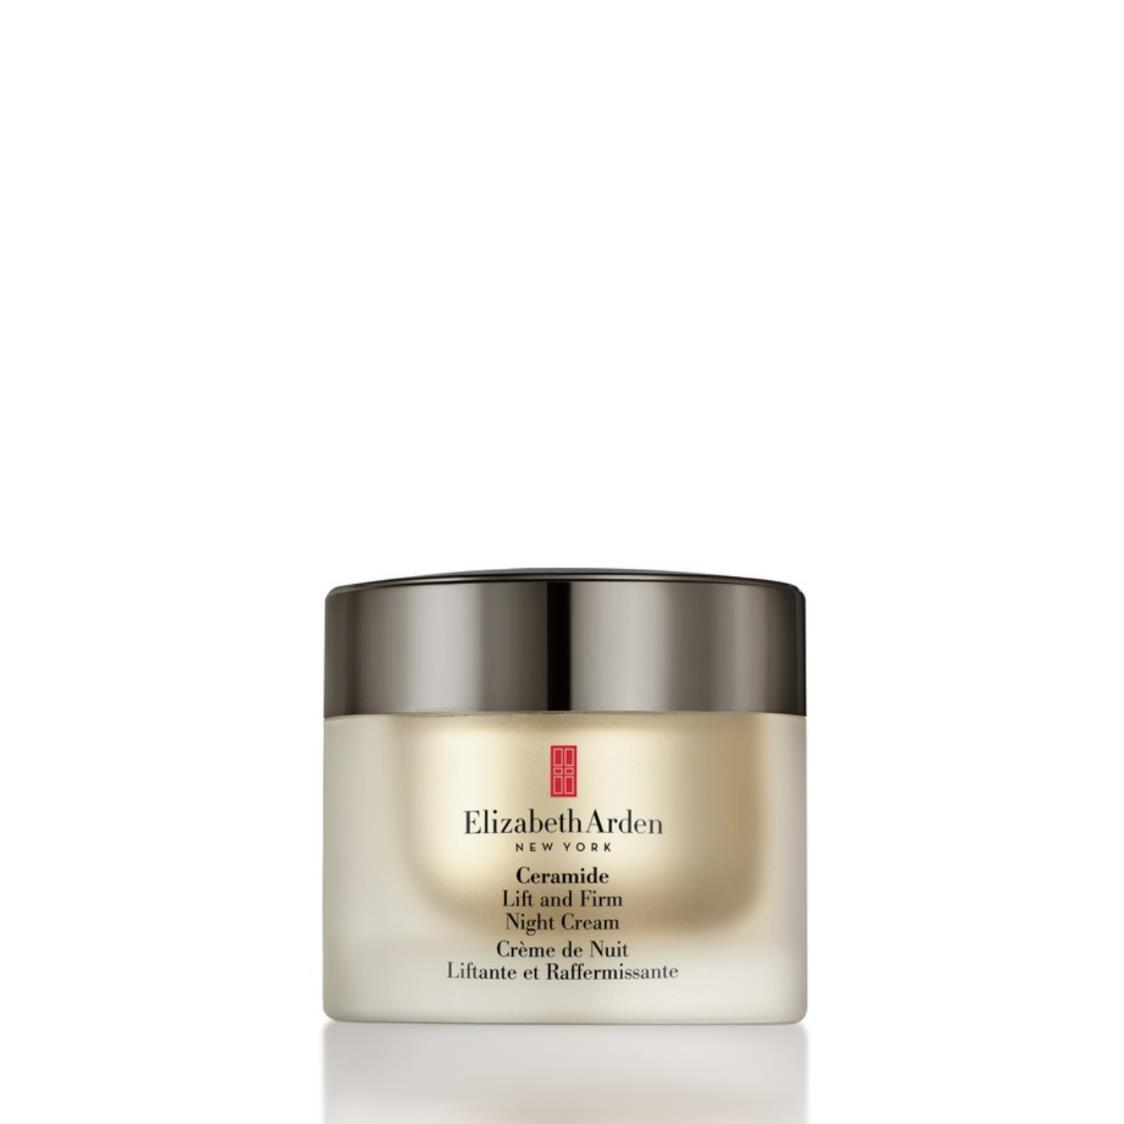 Ceramide Lift and Firm Night Cream 50ml